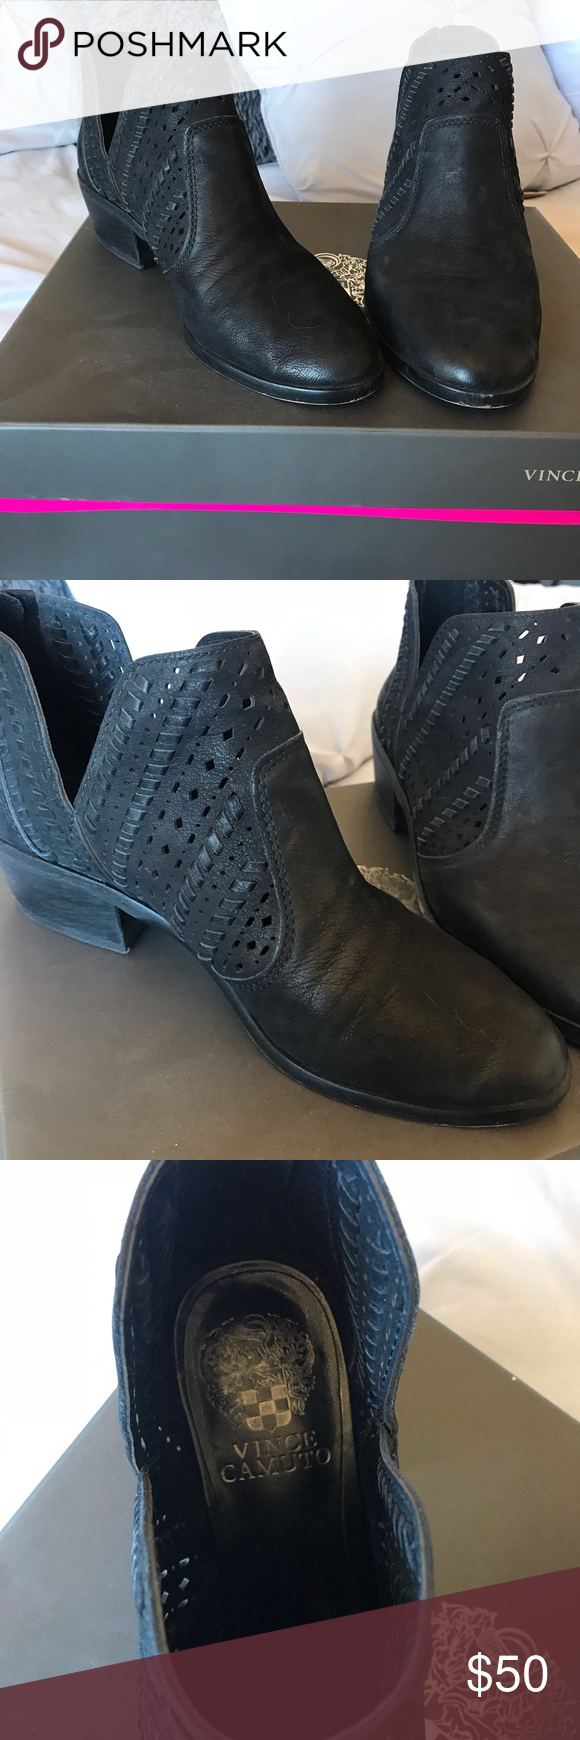 f986f4f6368 Vince Camuto Black Booties, size 7.5 Vince Camuto Prasata black booties. Size  7 1/2. Lightly worn and in excellent condition. Vince Camuto Shoes Ankle  Boots ...